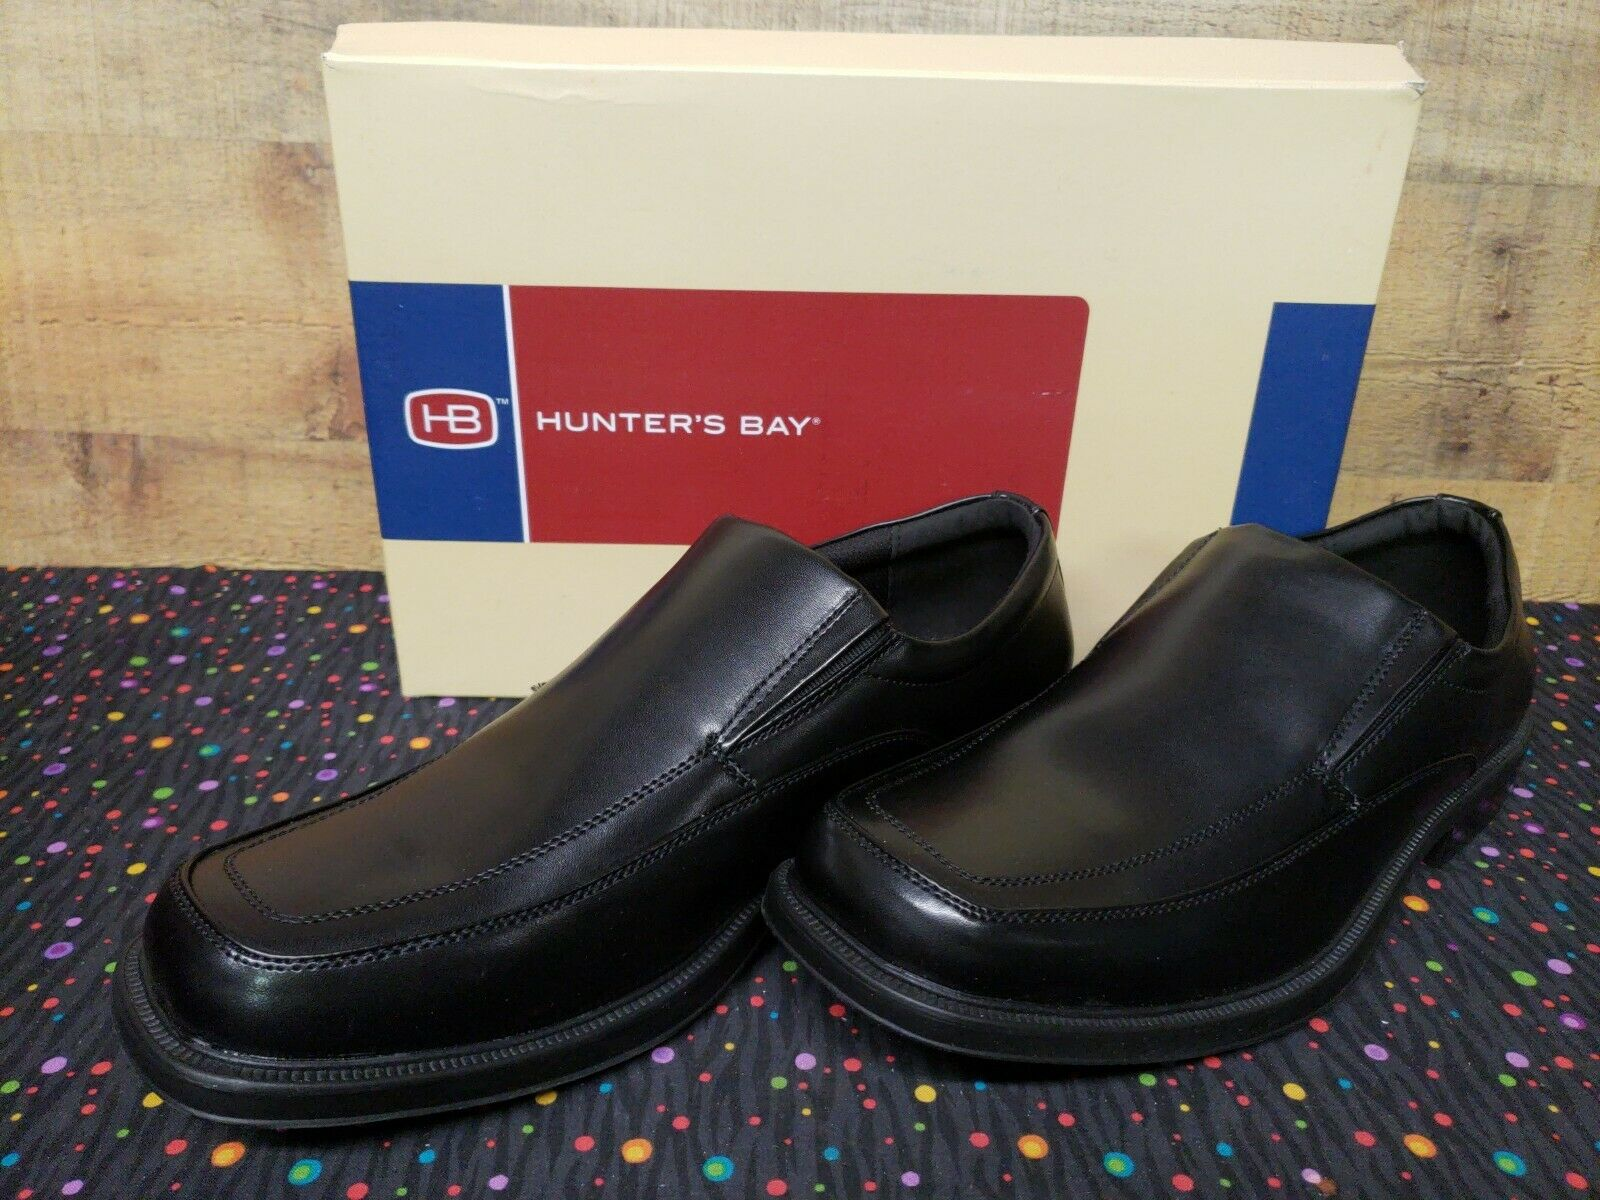 Hunters Bay 180012 Spencer Slipon Dress Mens shoes Size 13 New With Box